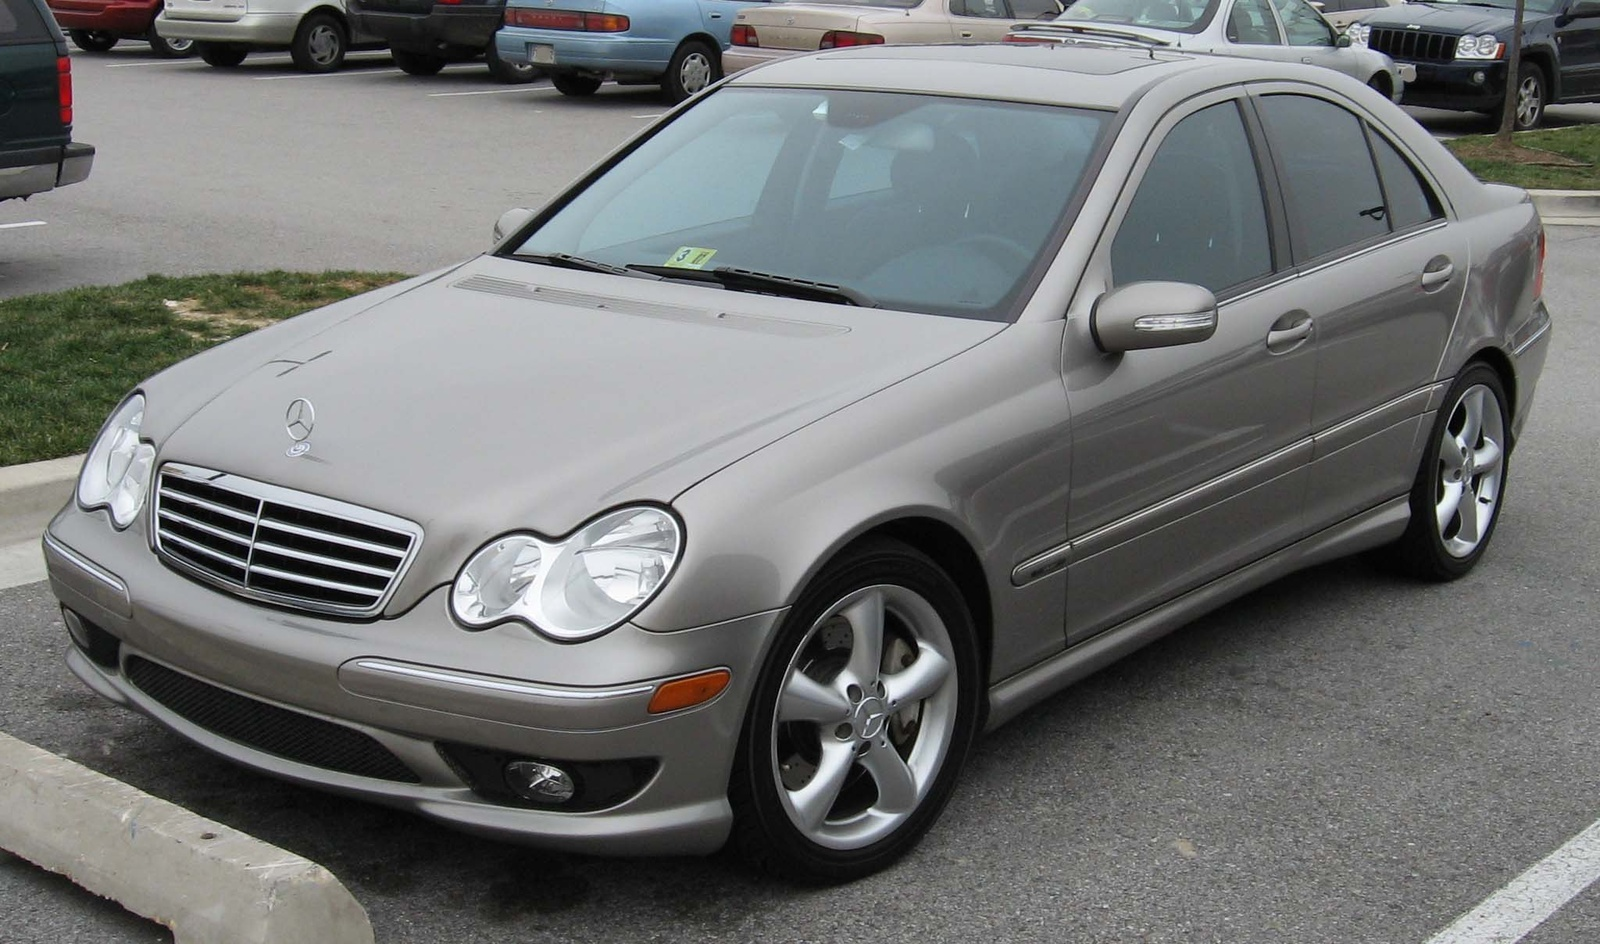 Mercedes benz c 240 photos 6 on better parts ltd for Mercedes benz of atlanta parts